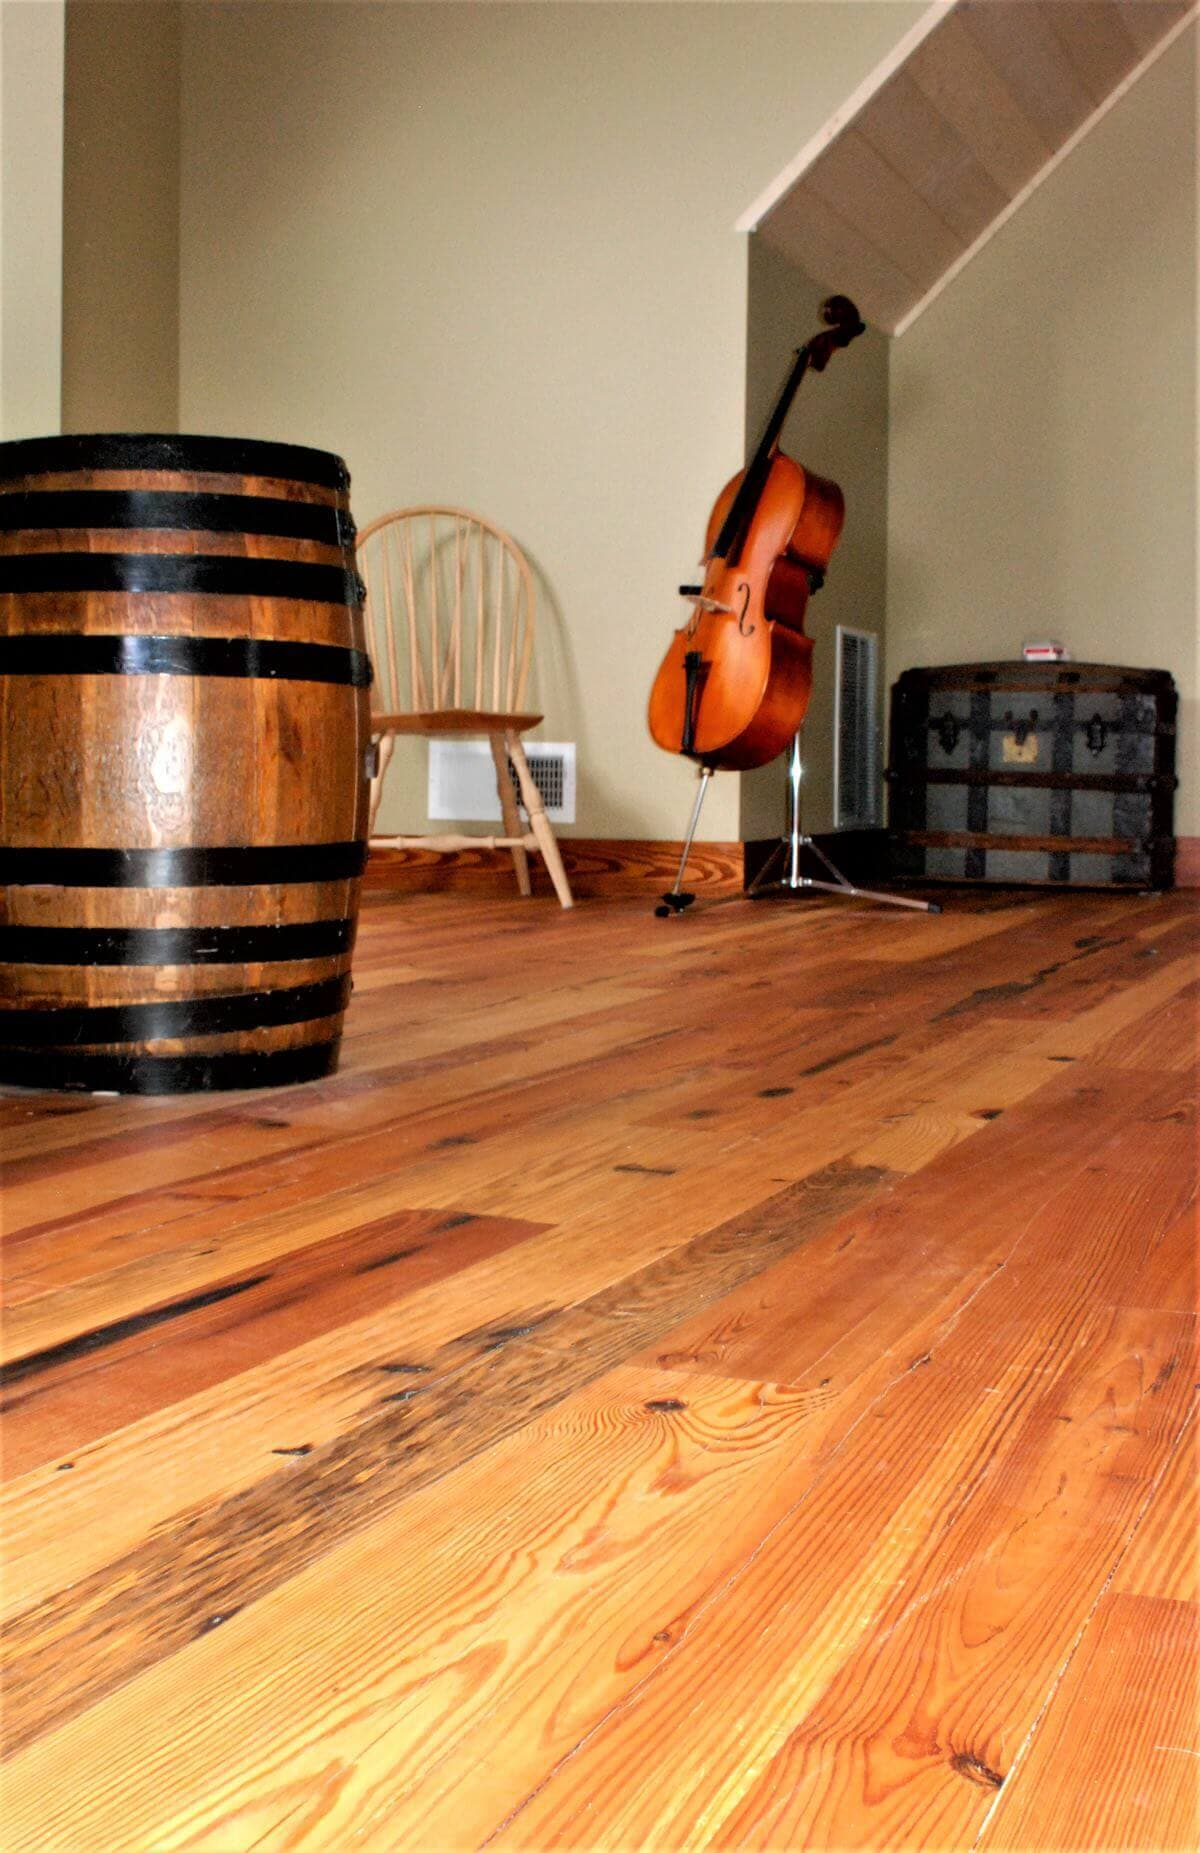 Heart pine flooring in a room with a cello hendersonville nc